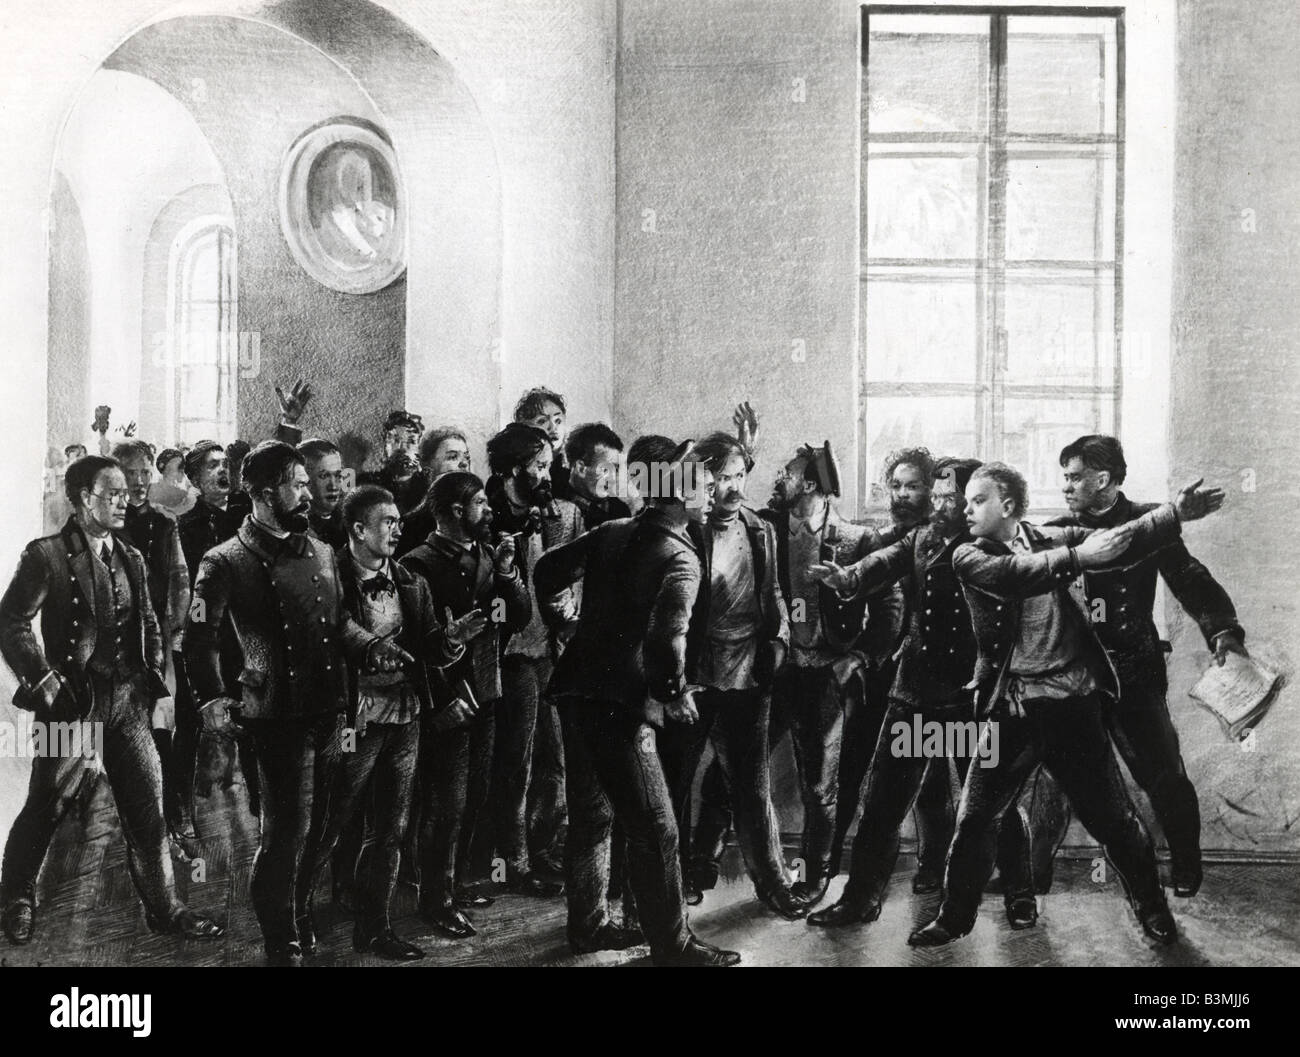 russian drawing stock photos russian drawing stock images  vladimir lenin leading a student protest at the kazan state university from a 1940s drawing